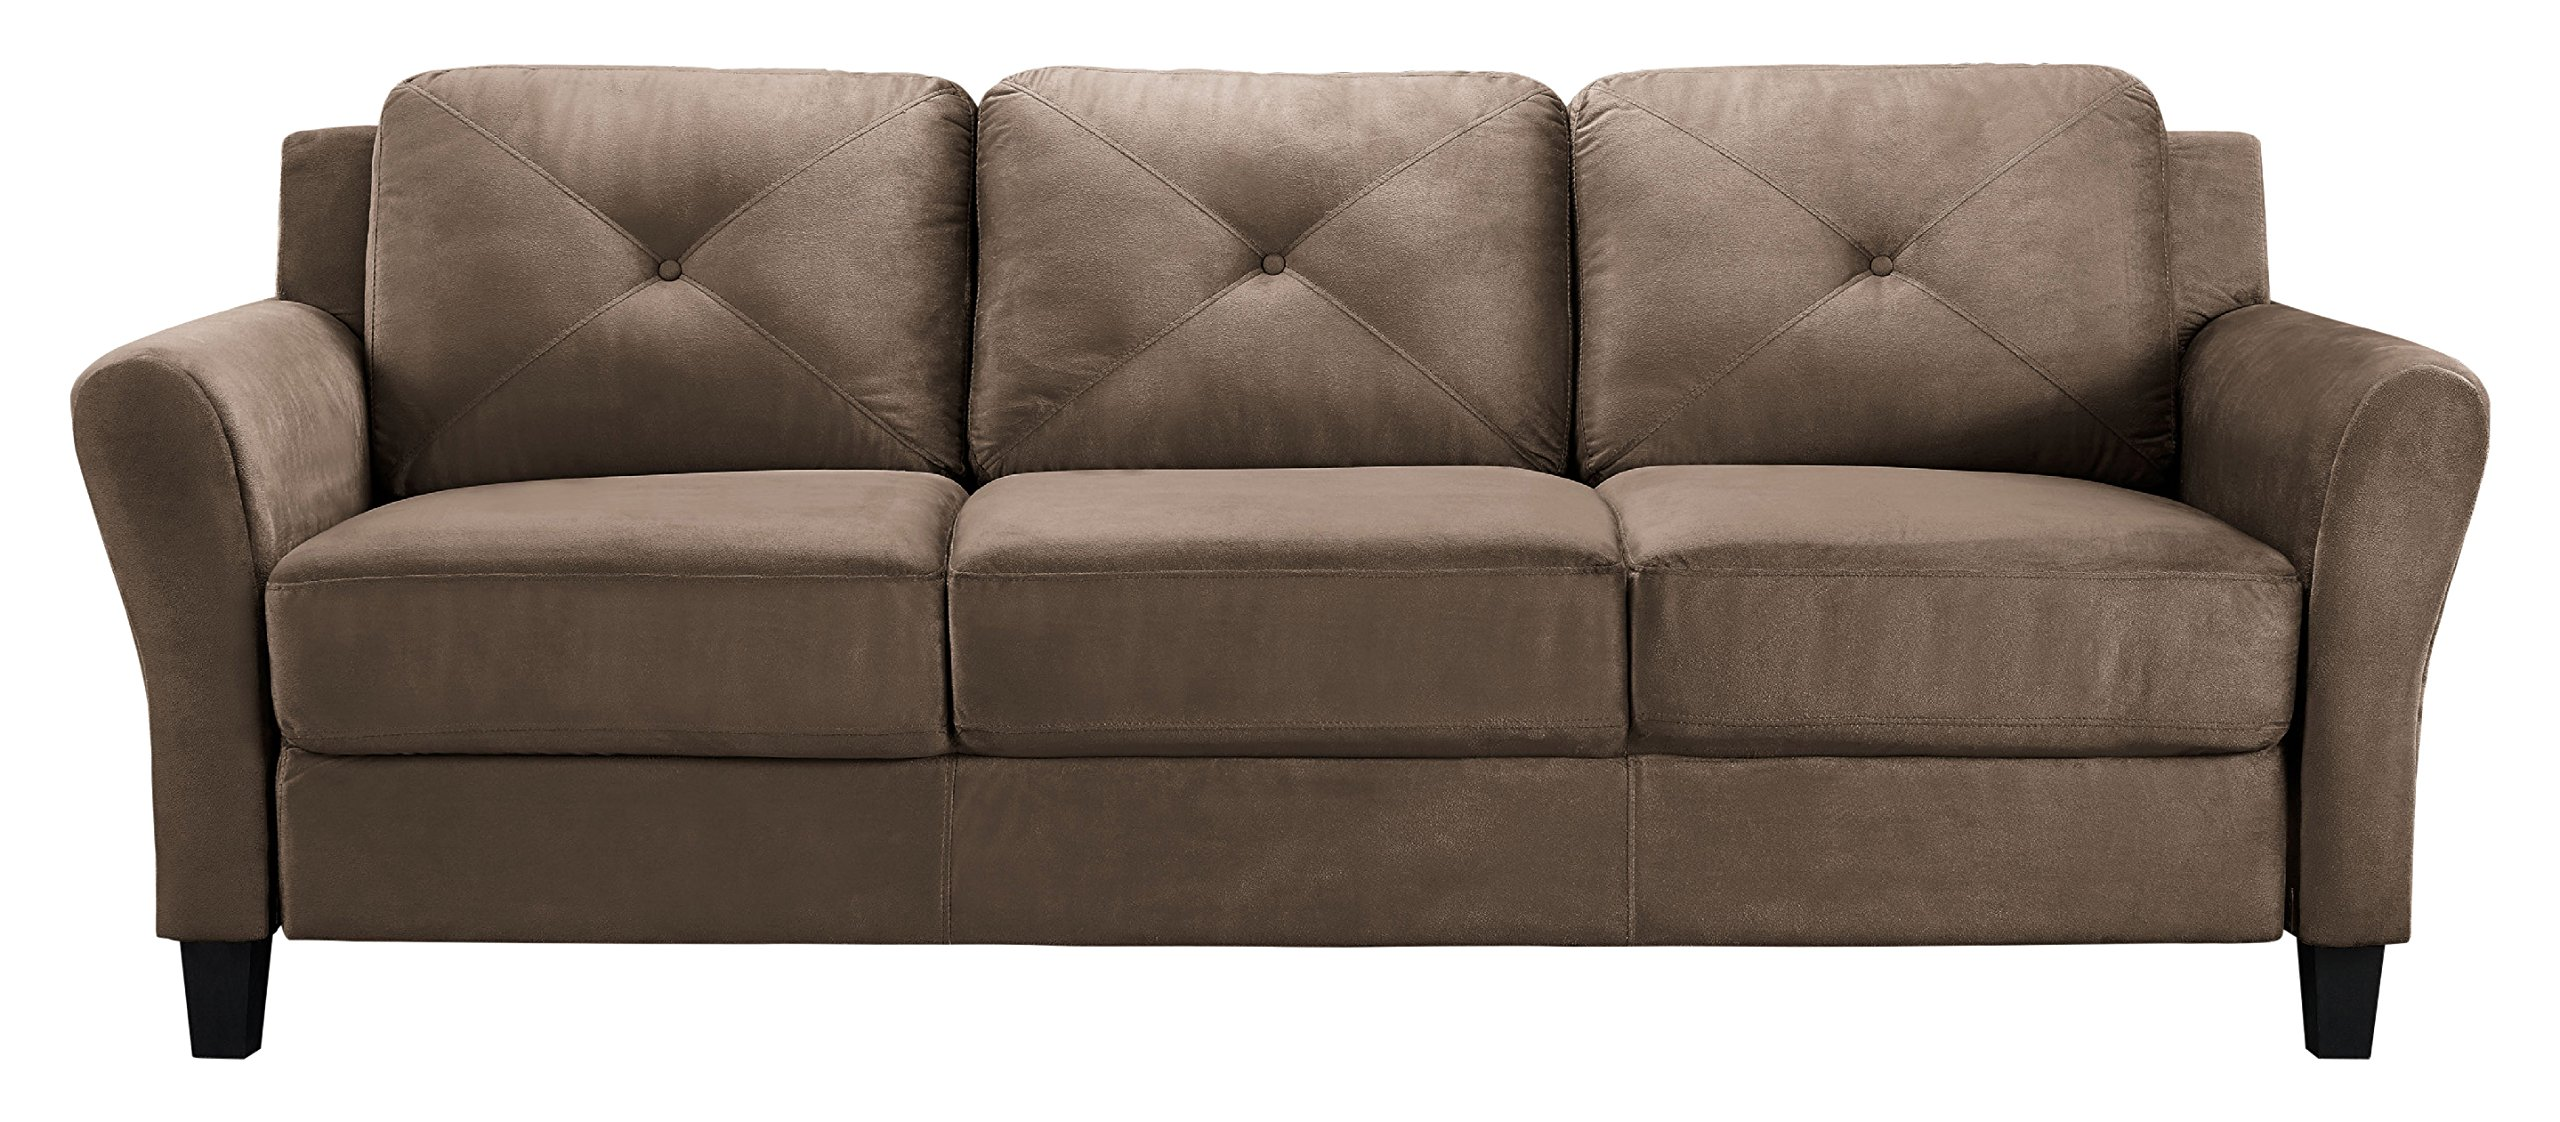 LifeStyle Solutions Harrington Sofa in Brown by LifeStyle Solutions